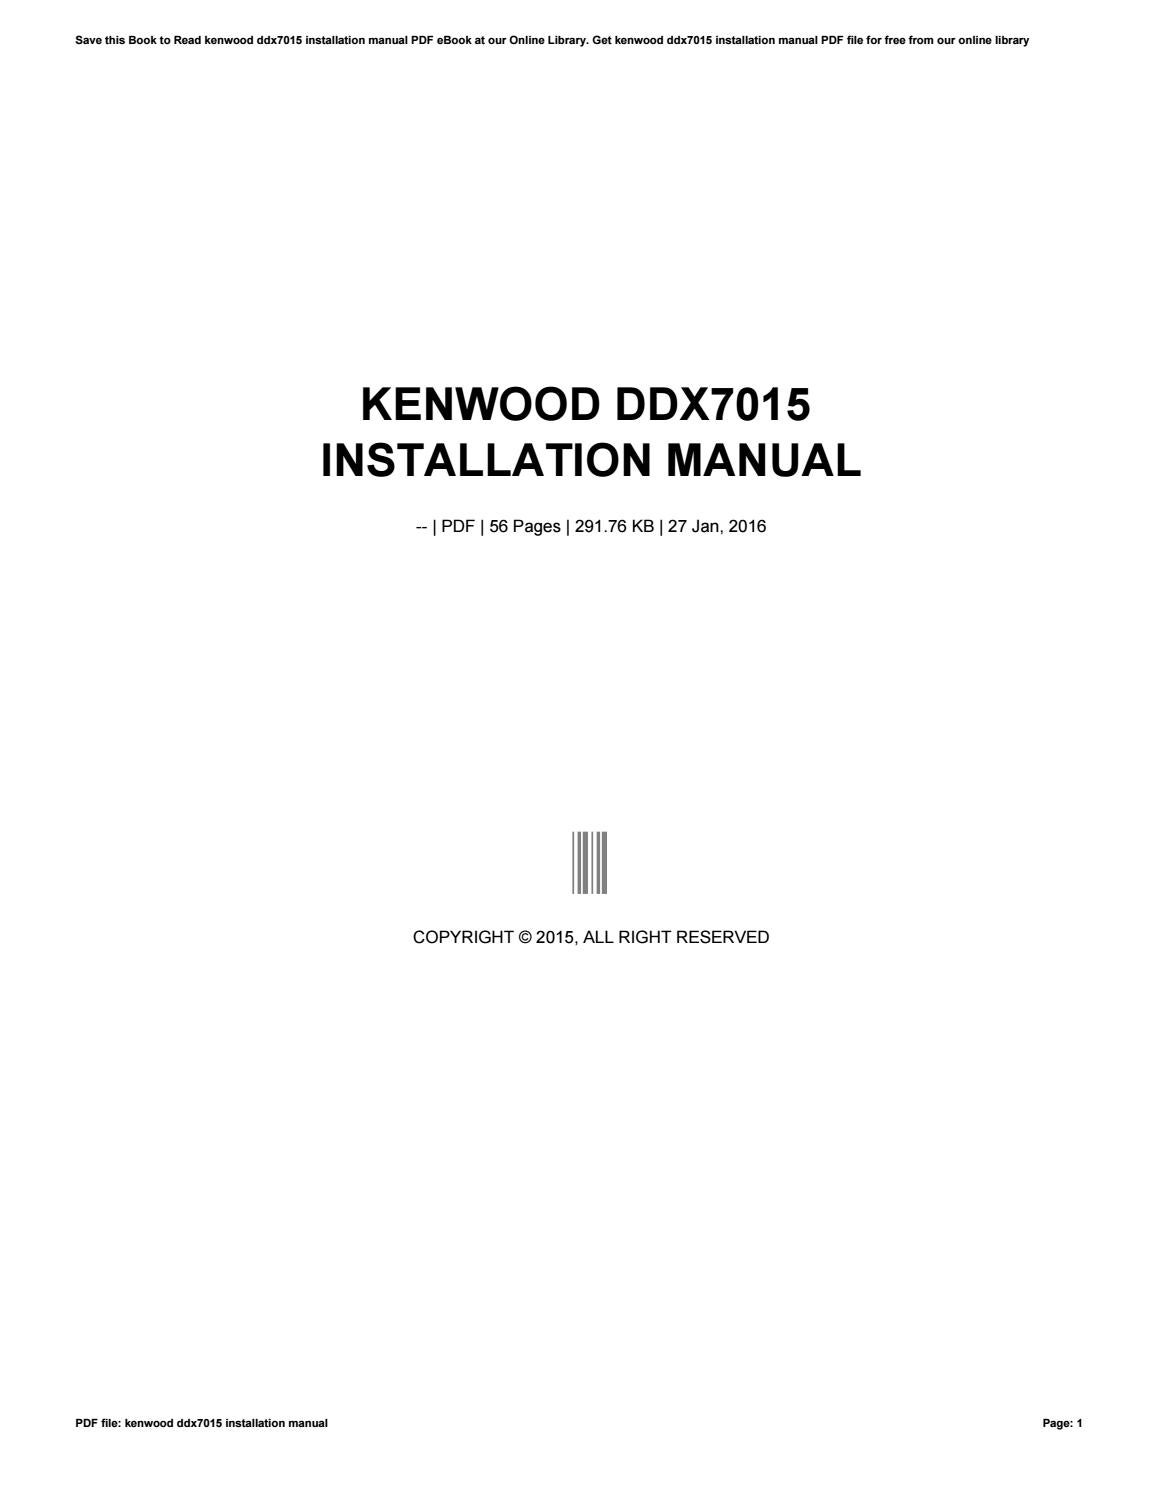 hight resolution of kenwood ddx7015 installation manual by mailfs108 issuu